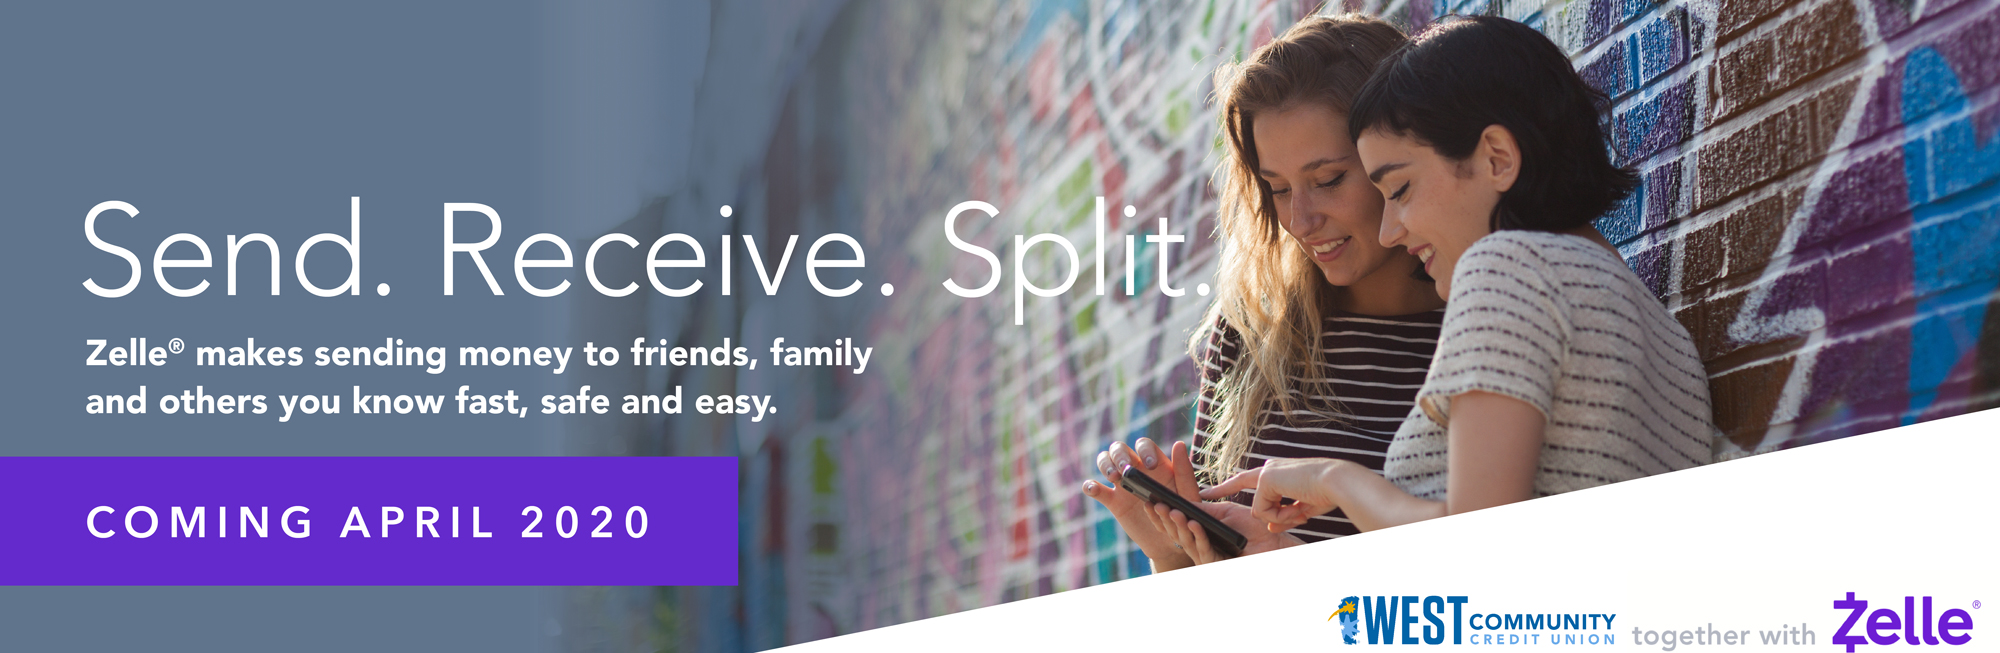 Zelle® coming April 2020! Send. Receive. Split. Zelle makes sending money to friends, family and others you know fast, safe and easy.